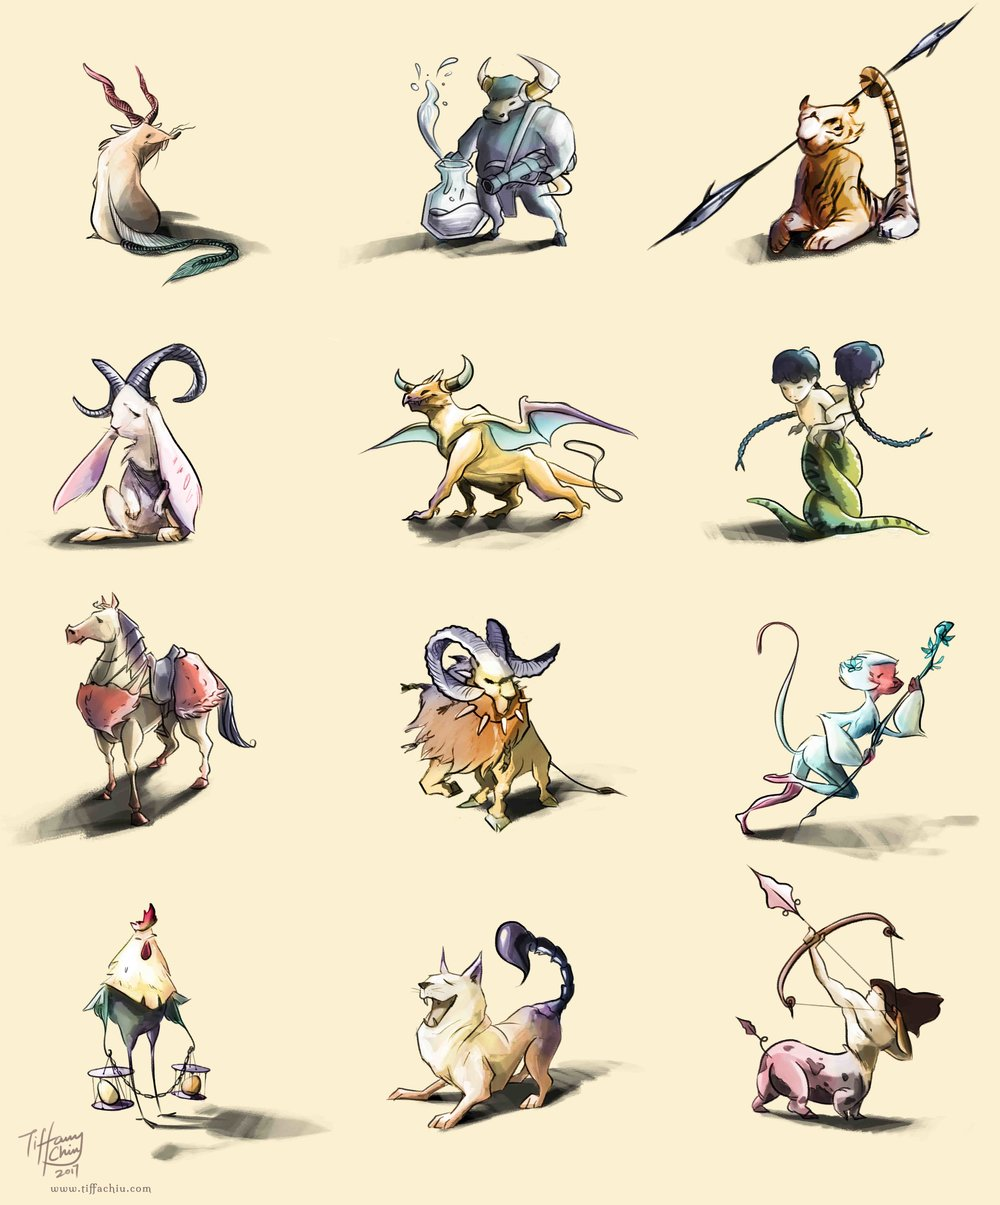 Character designs created by combining Chinese zodiac animals with the corresponding western horoscope features.